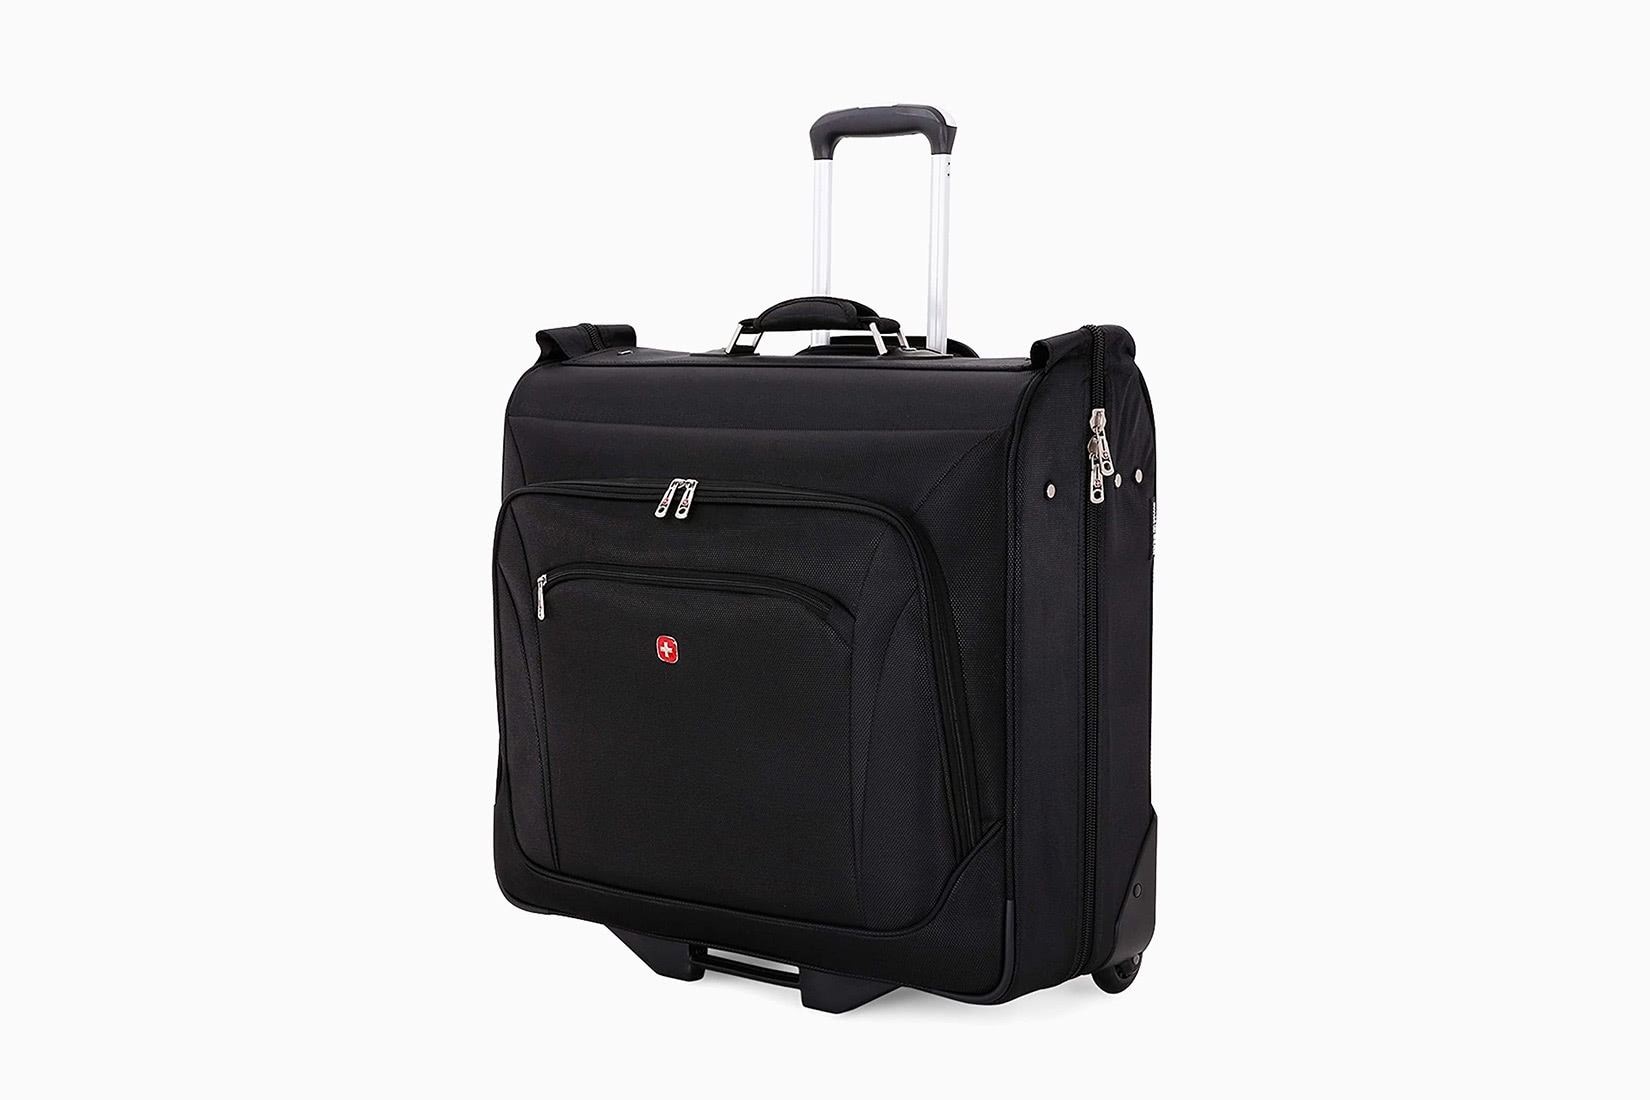 best garment bags rolling suitcase swissgear review - Luxe Digital